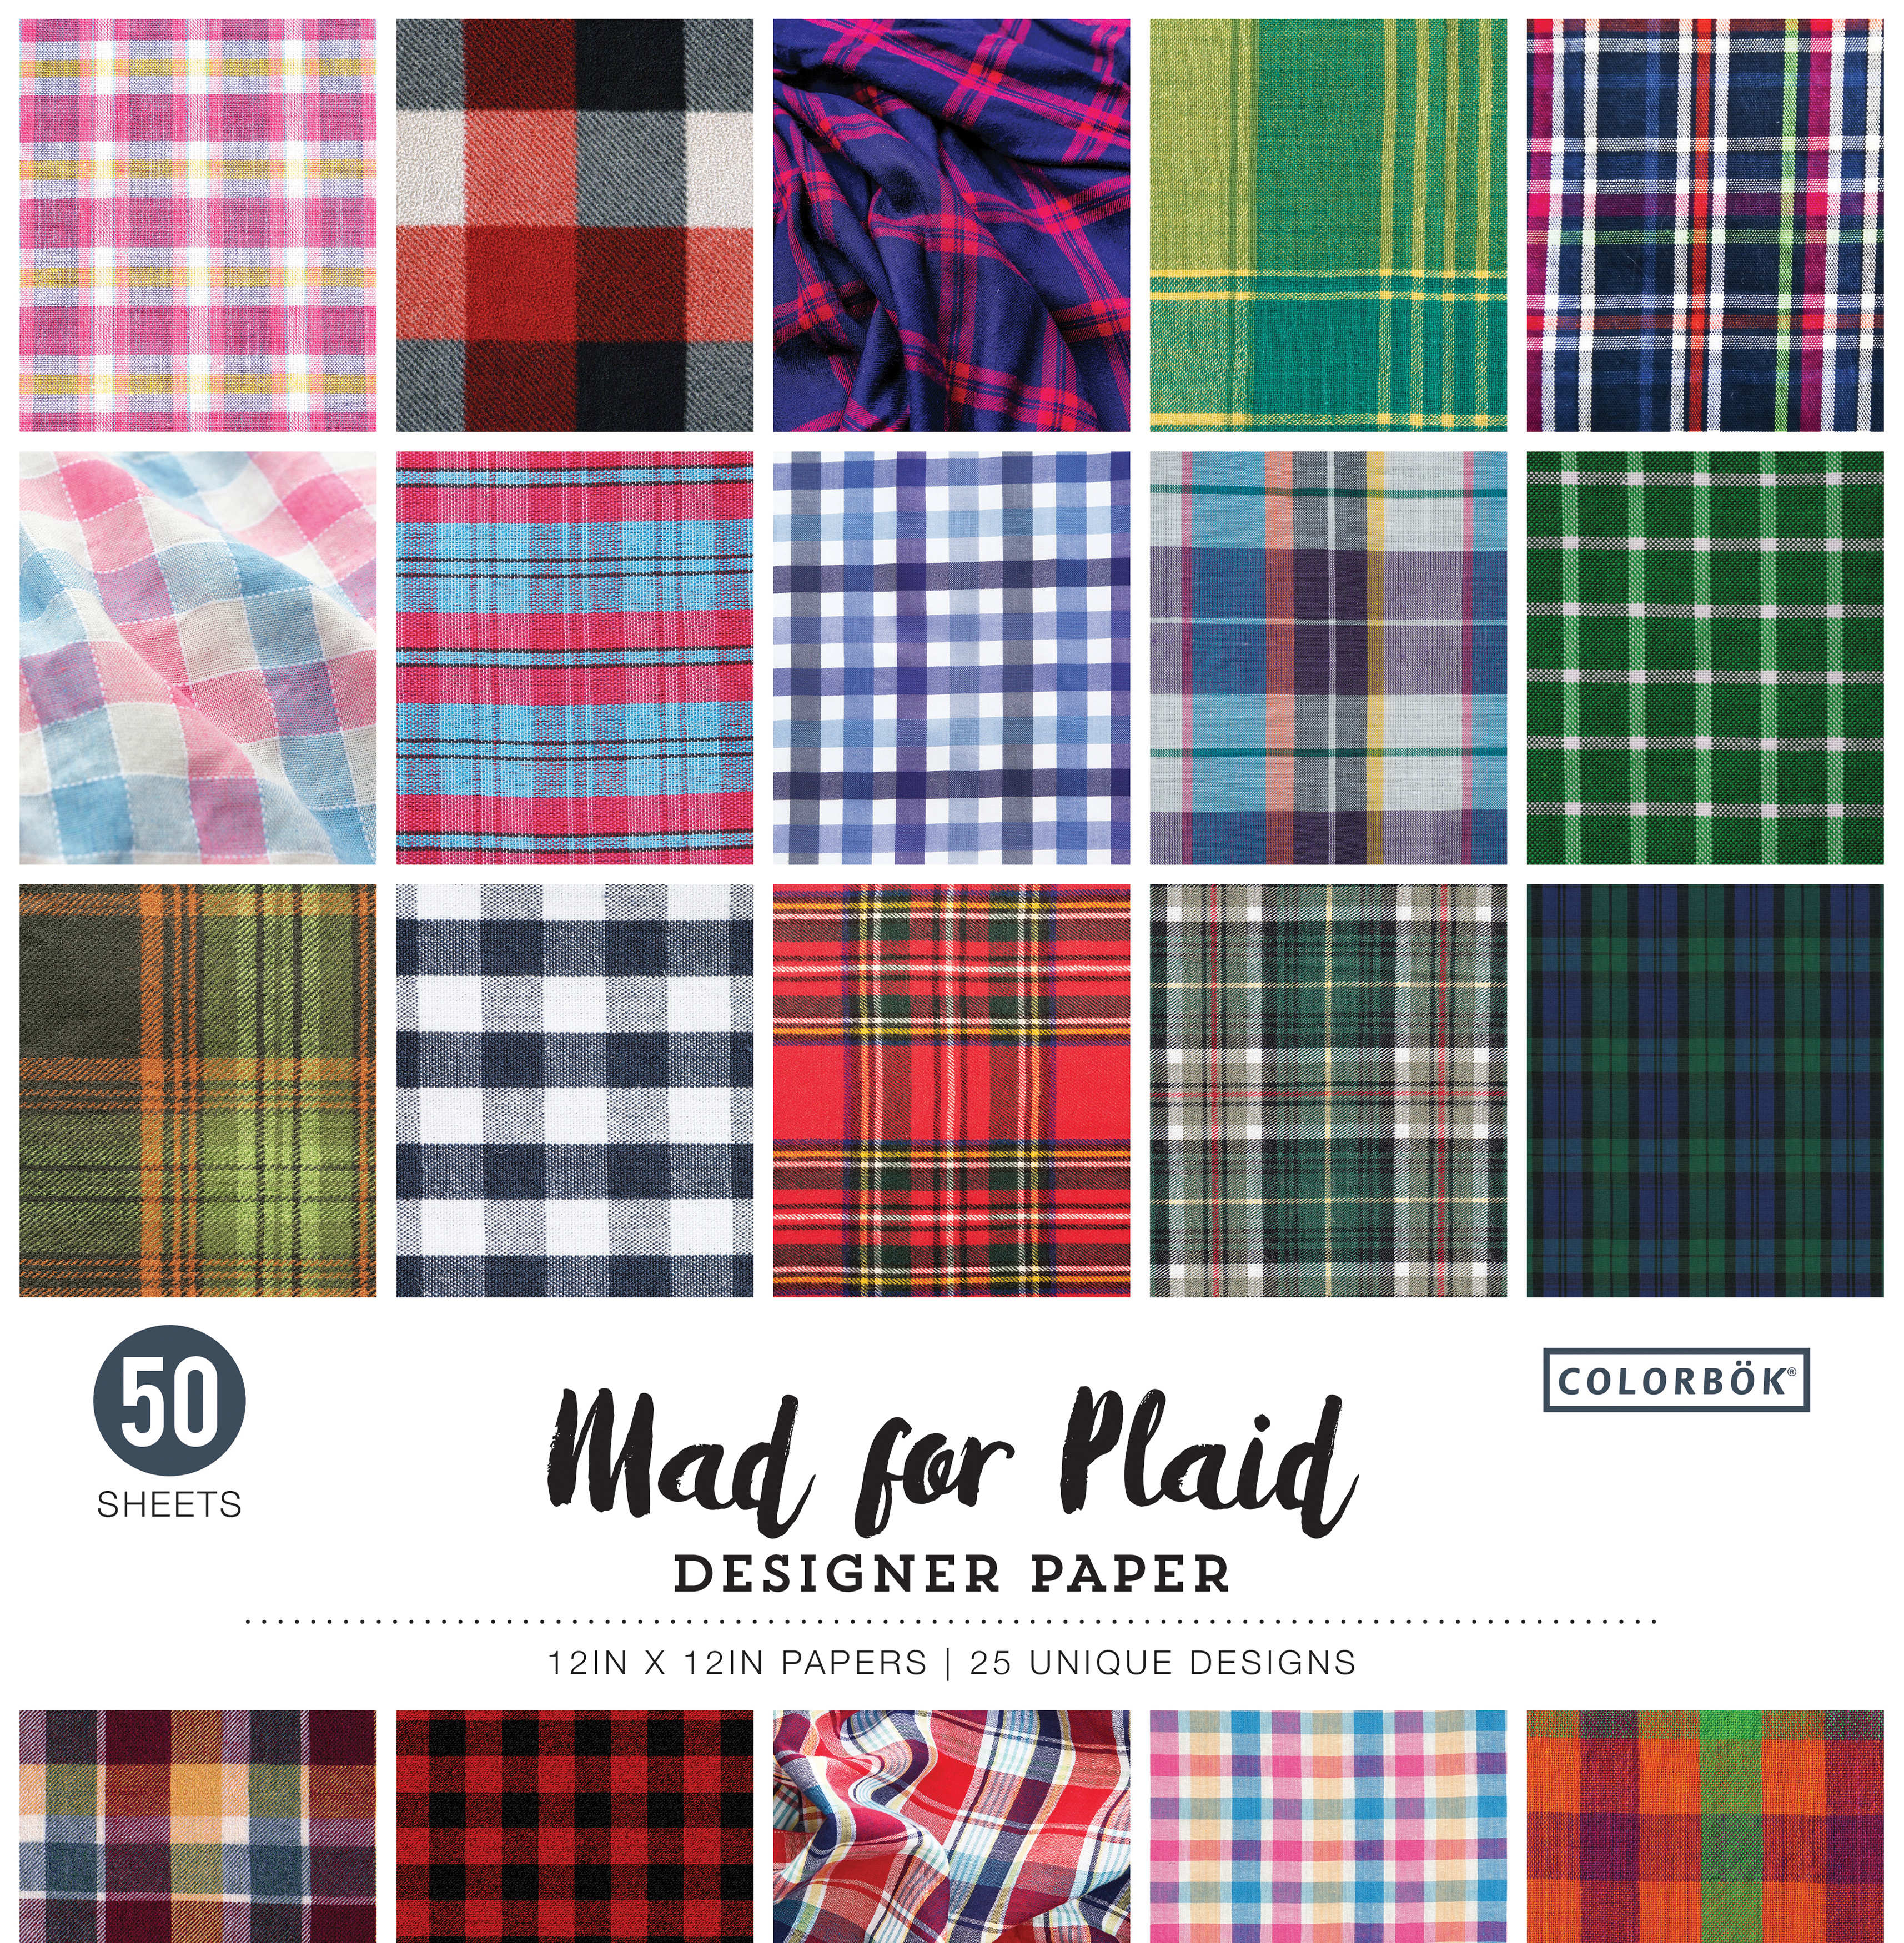 Mad for Plaid Paper Pack